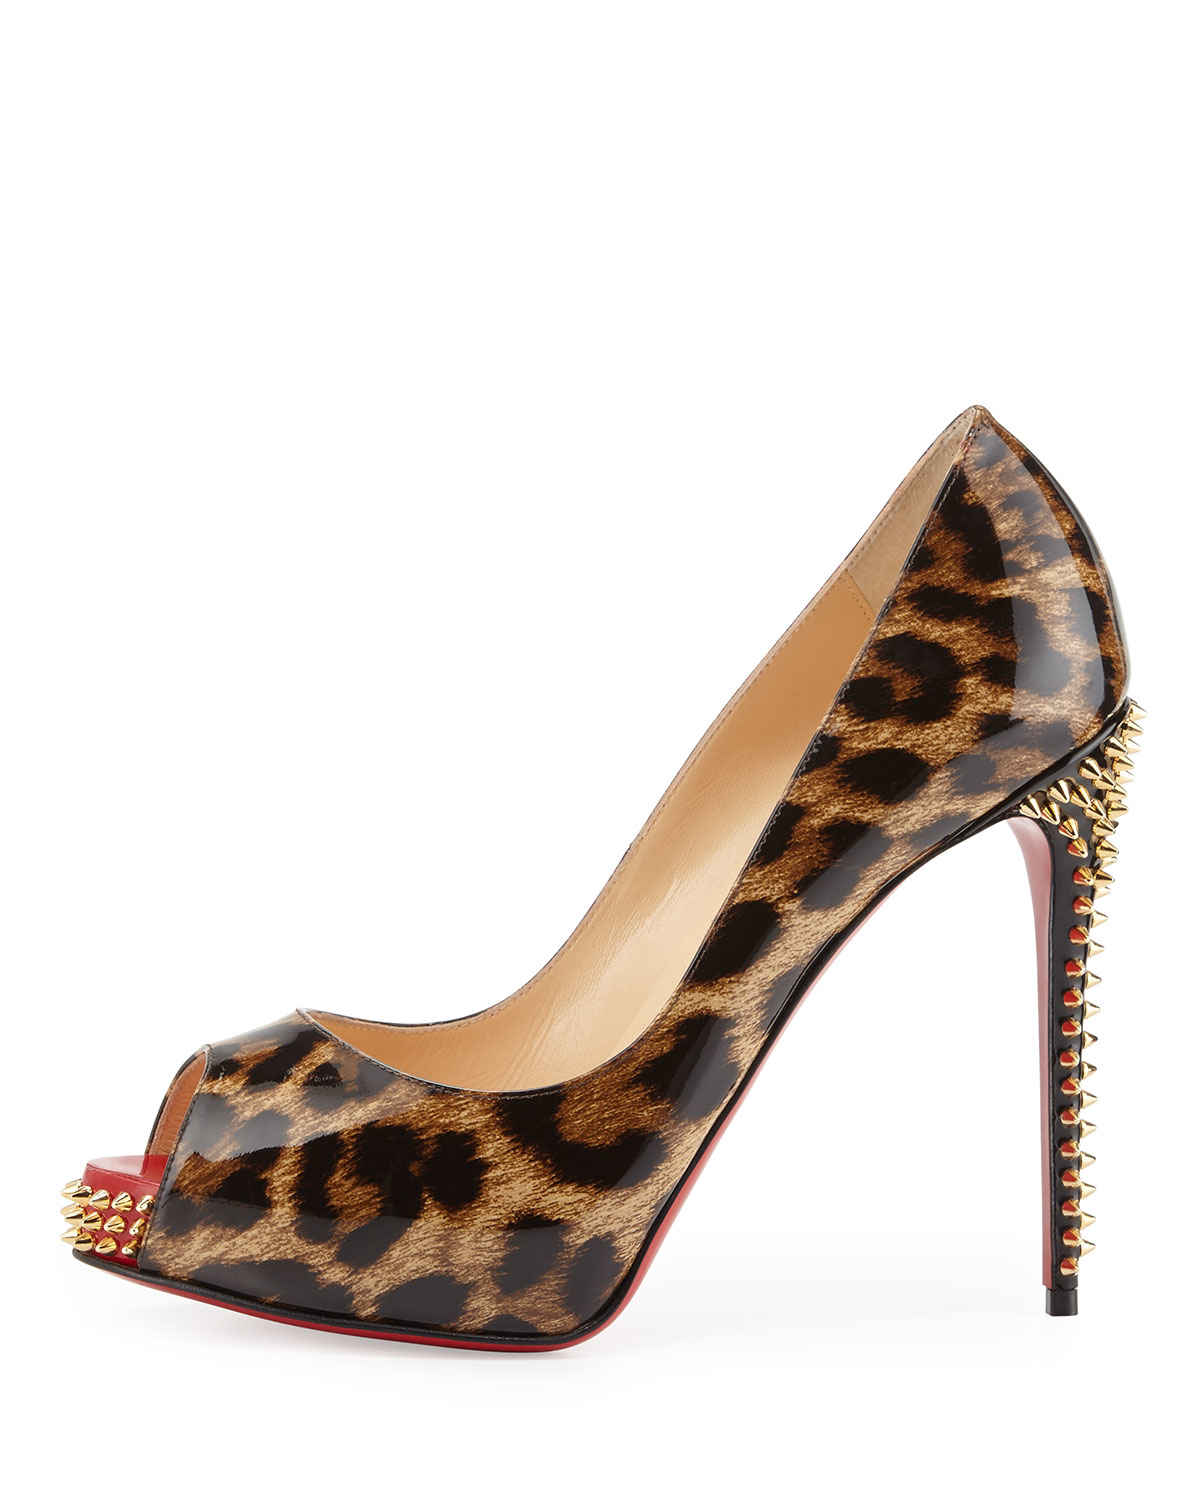 Christian louboutin Nvps Leopard-print Red Sole Pump in Brown | Lyst